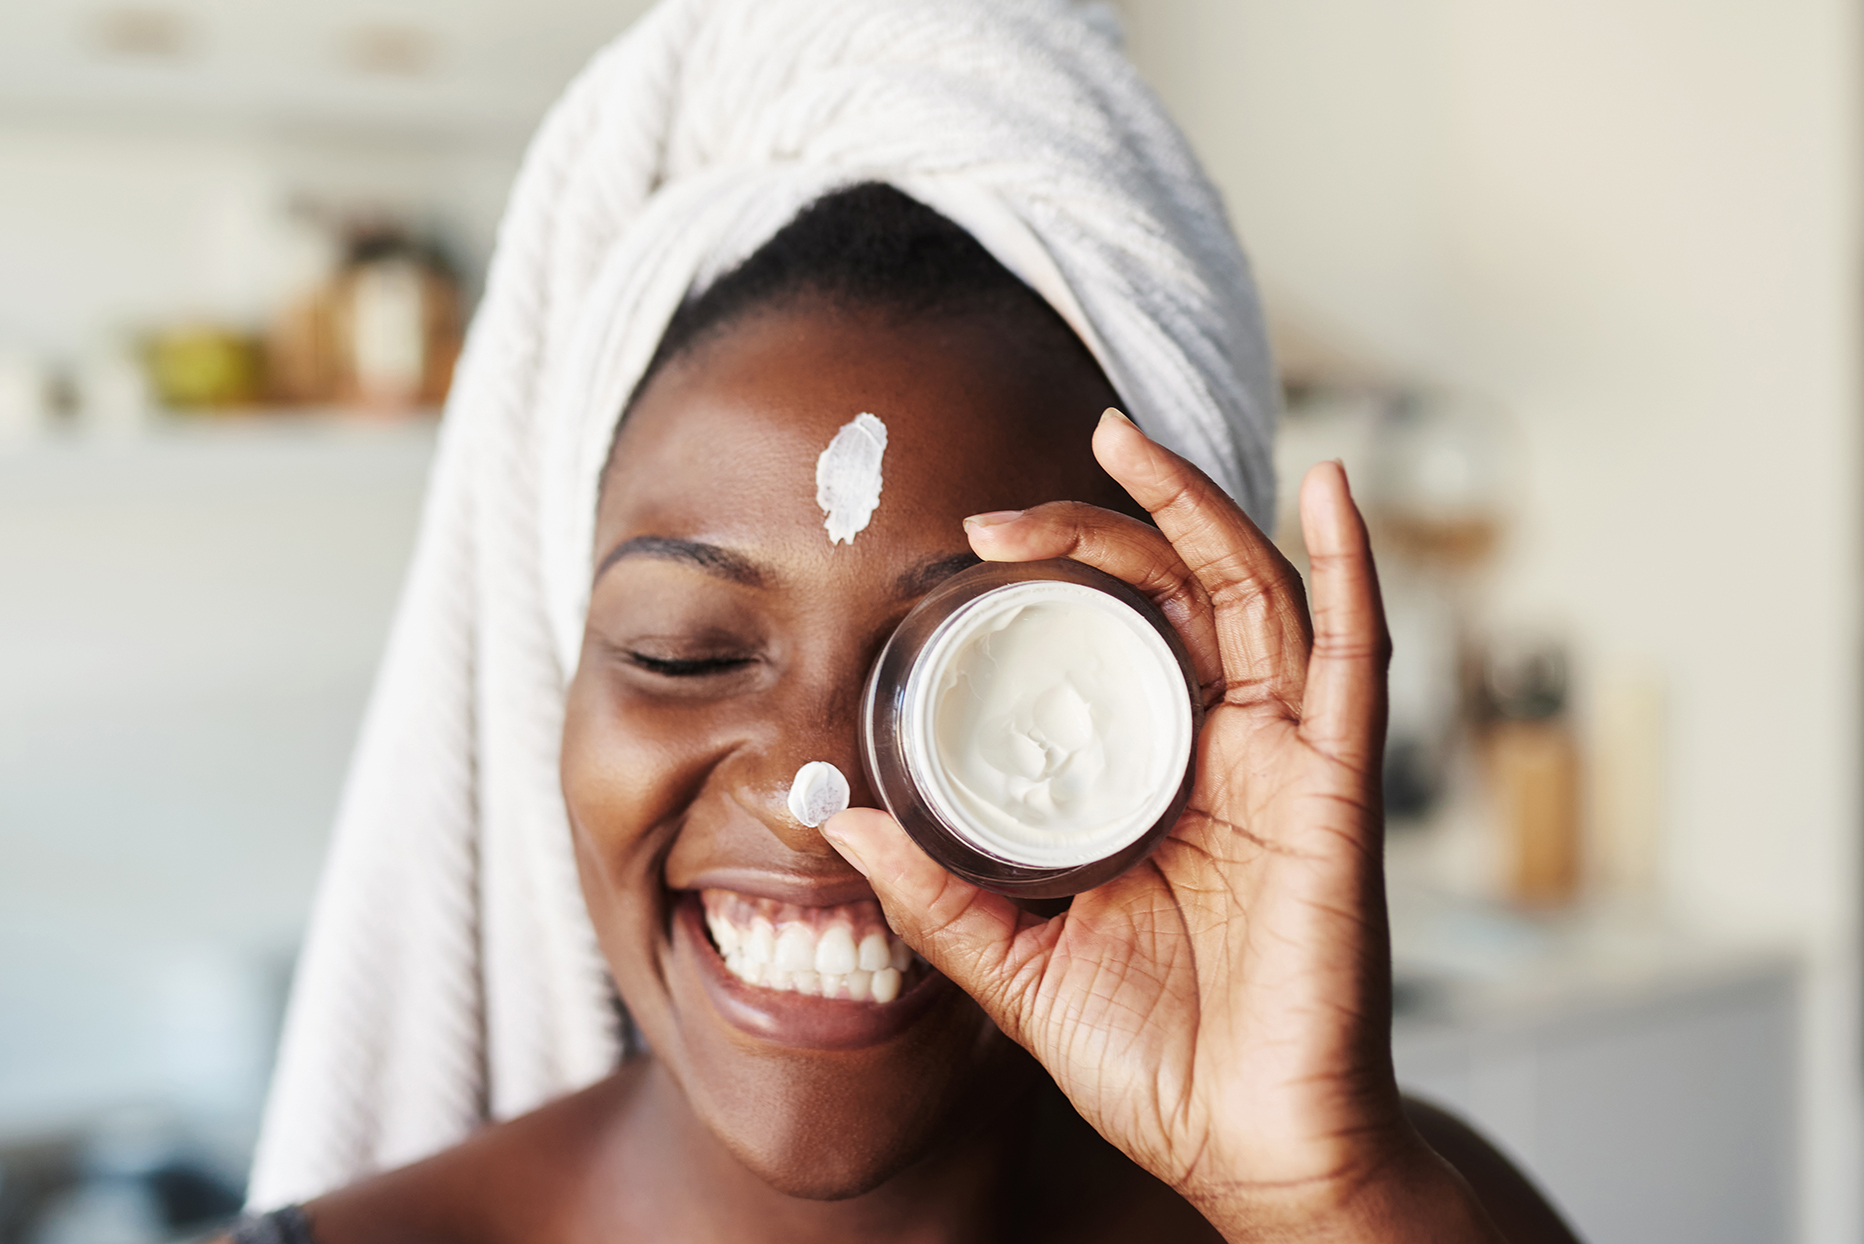 Woman with moisturizer on her face, holding a jar of lotion